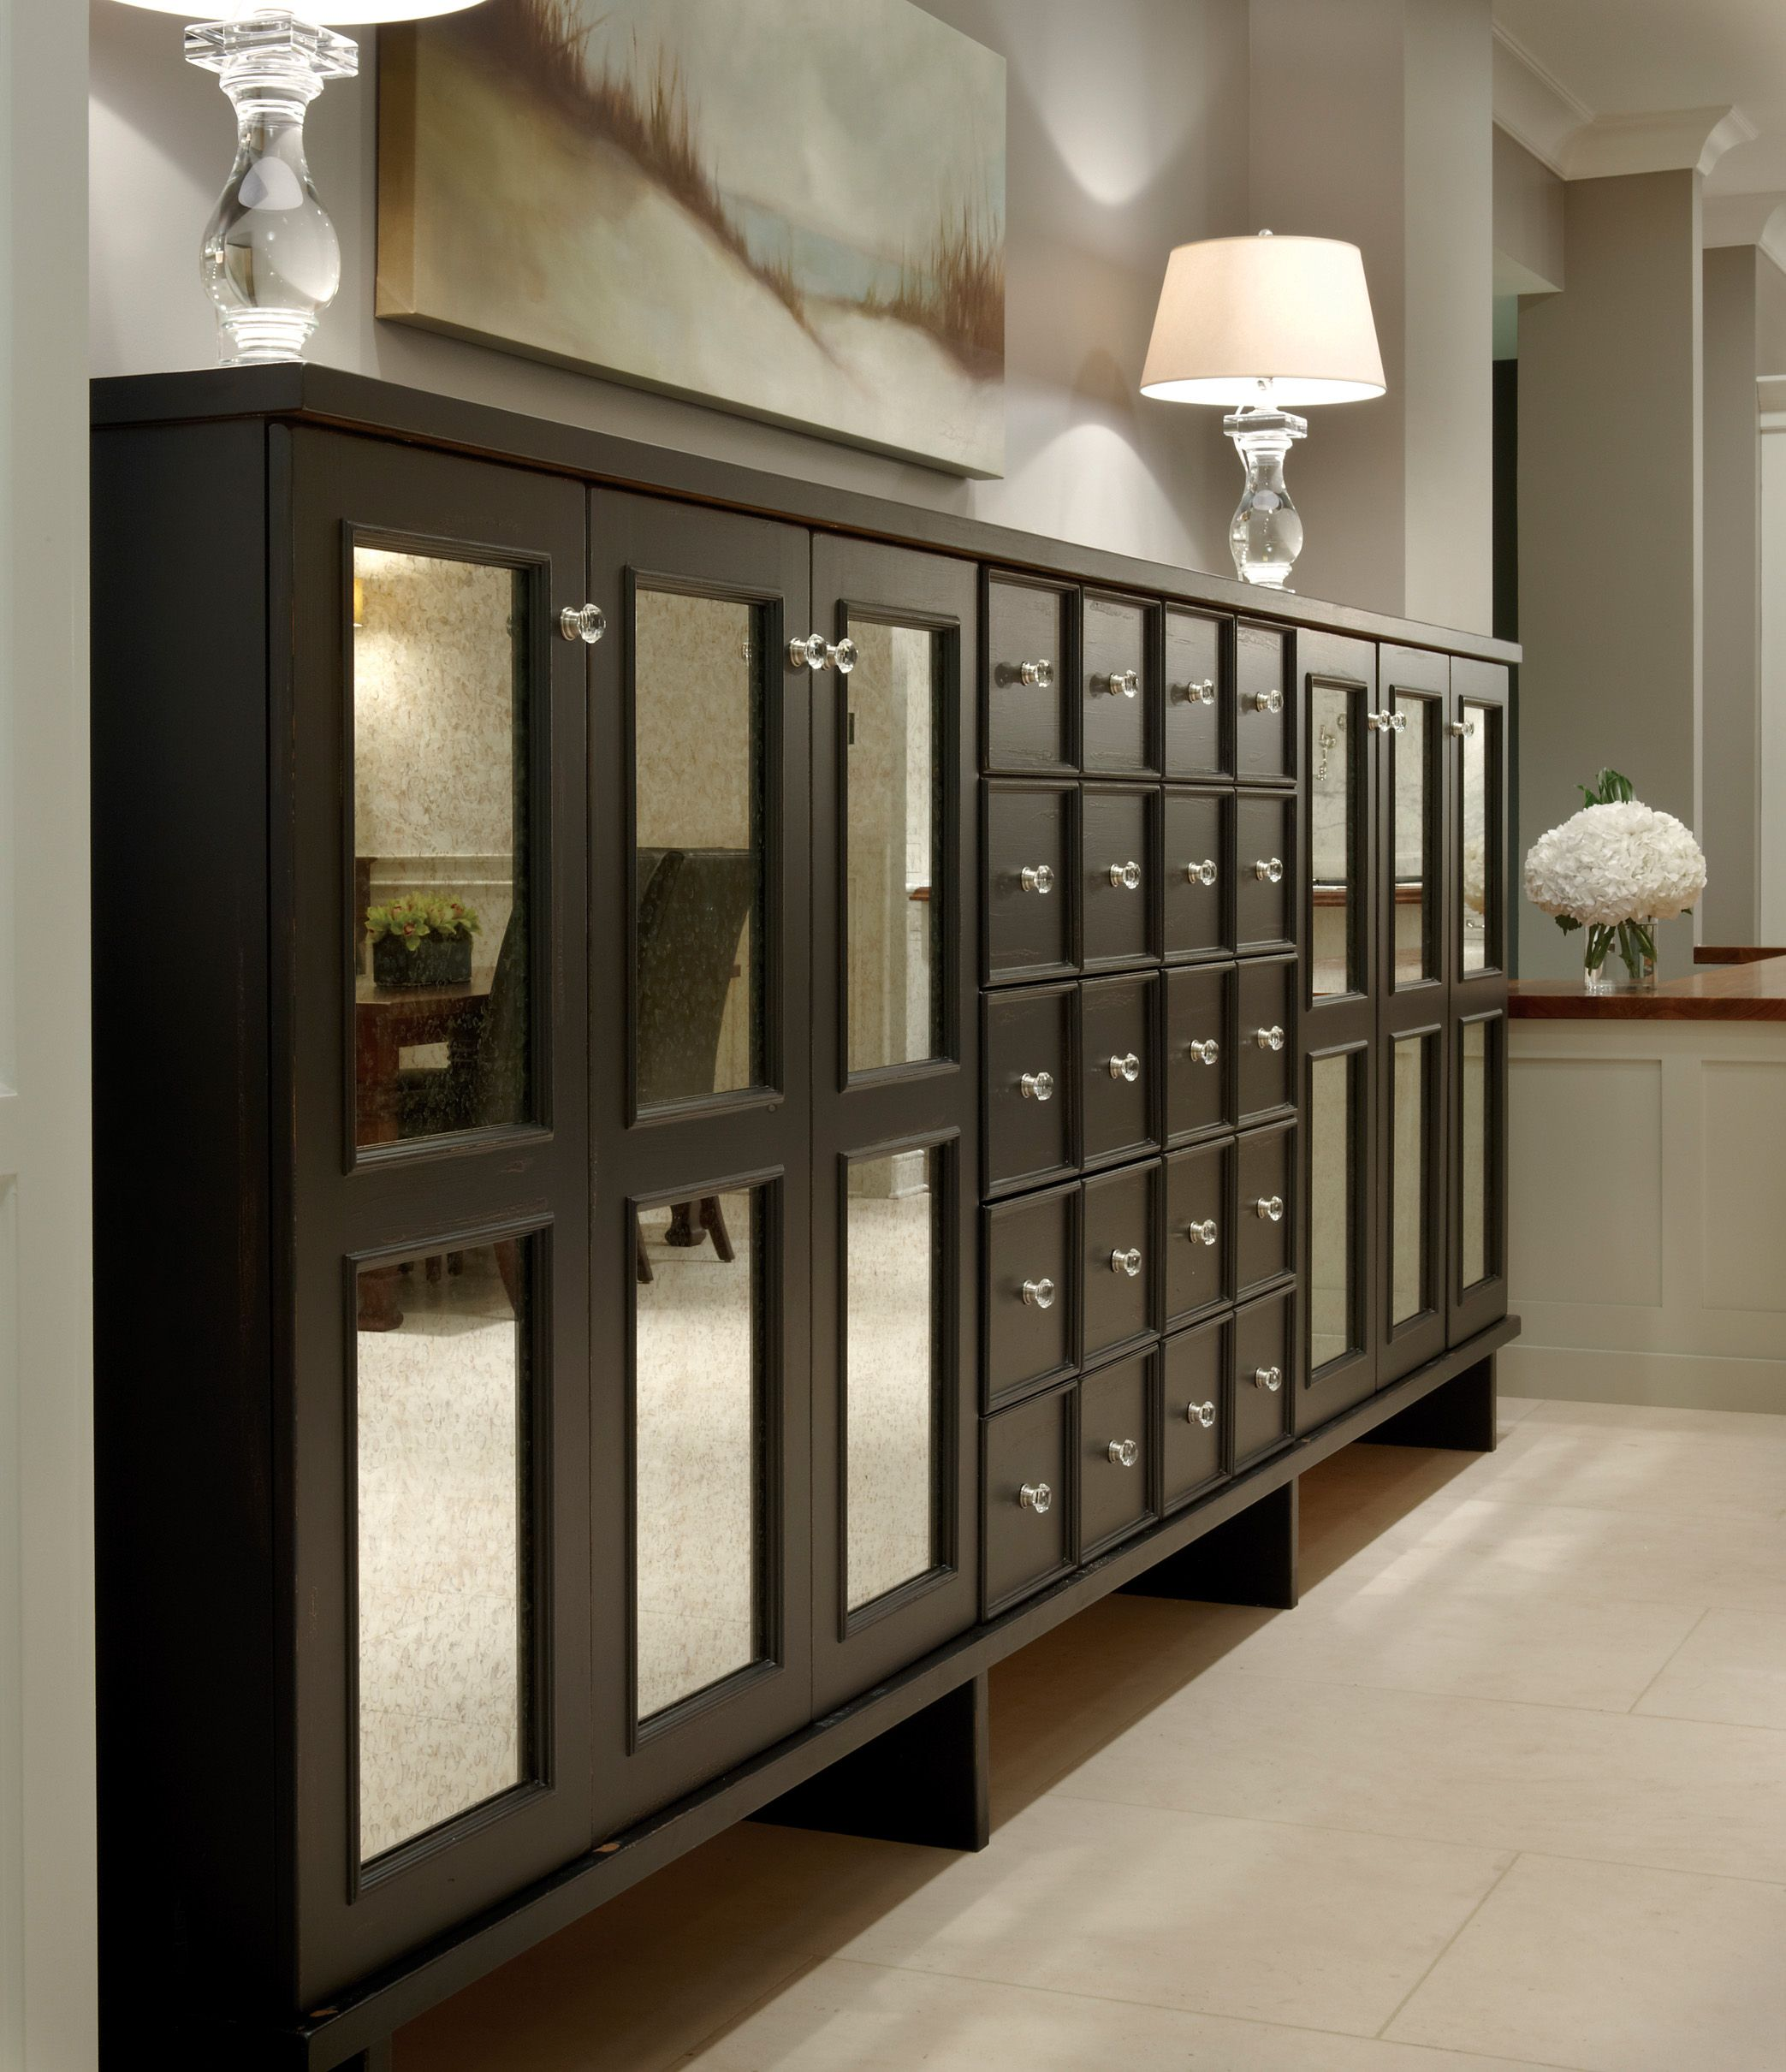 Bedroom Cabinet Design Ideas: Best 25+ Bedroom Cabinets Ideas On Pinterest